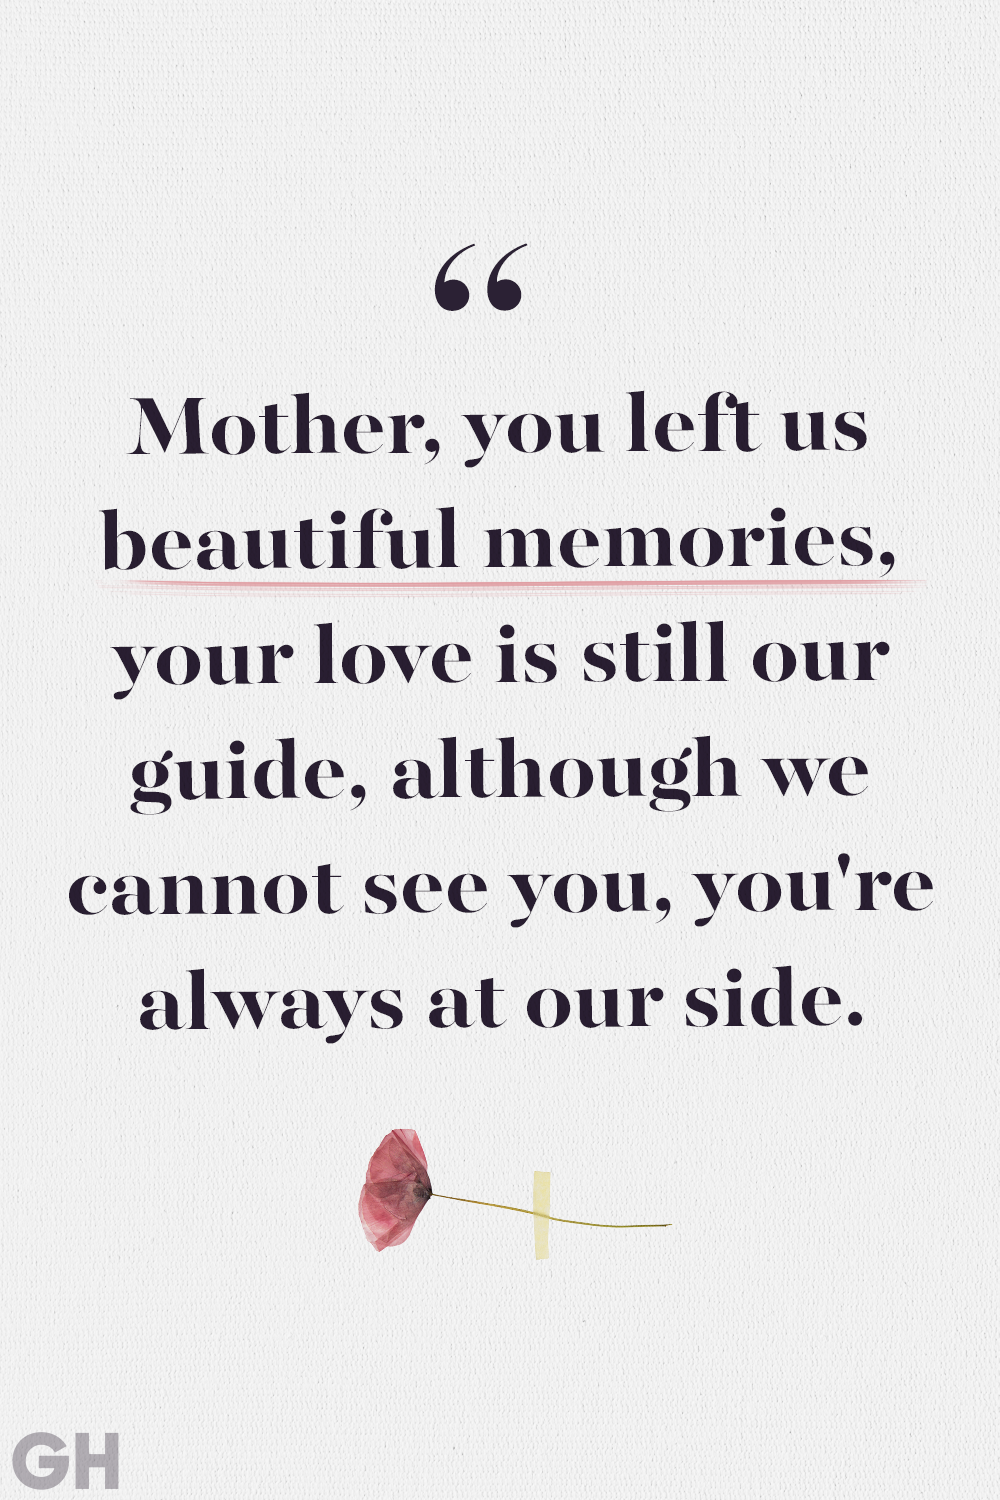 Loss of Mother Quotes Beautiful Memories